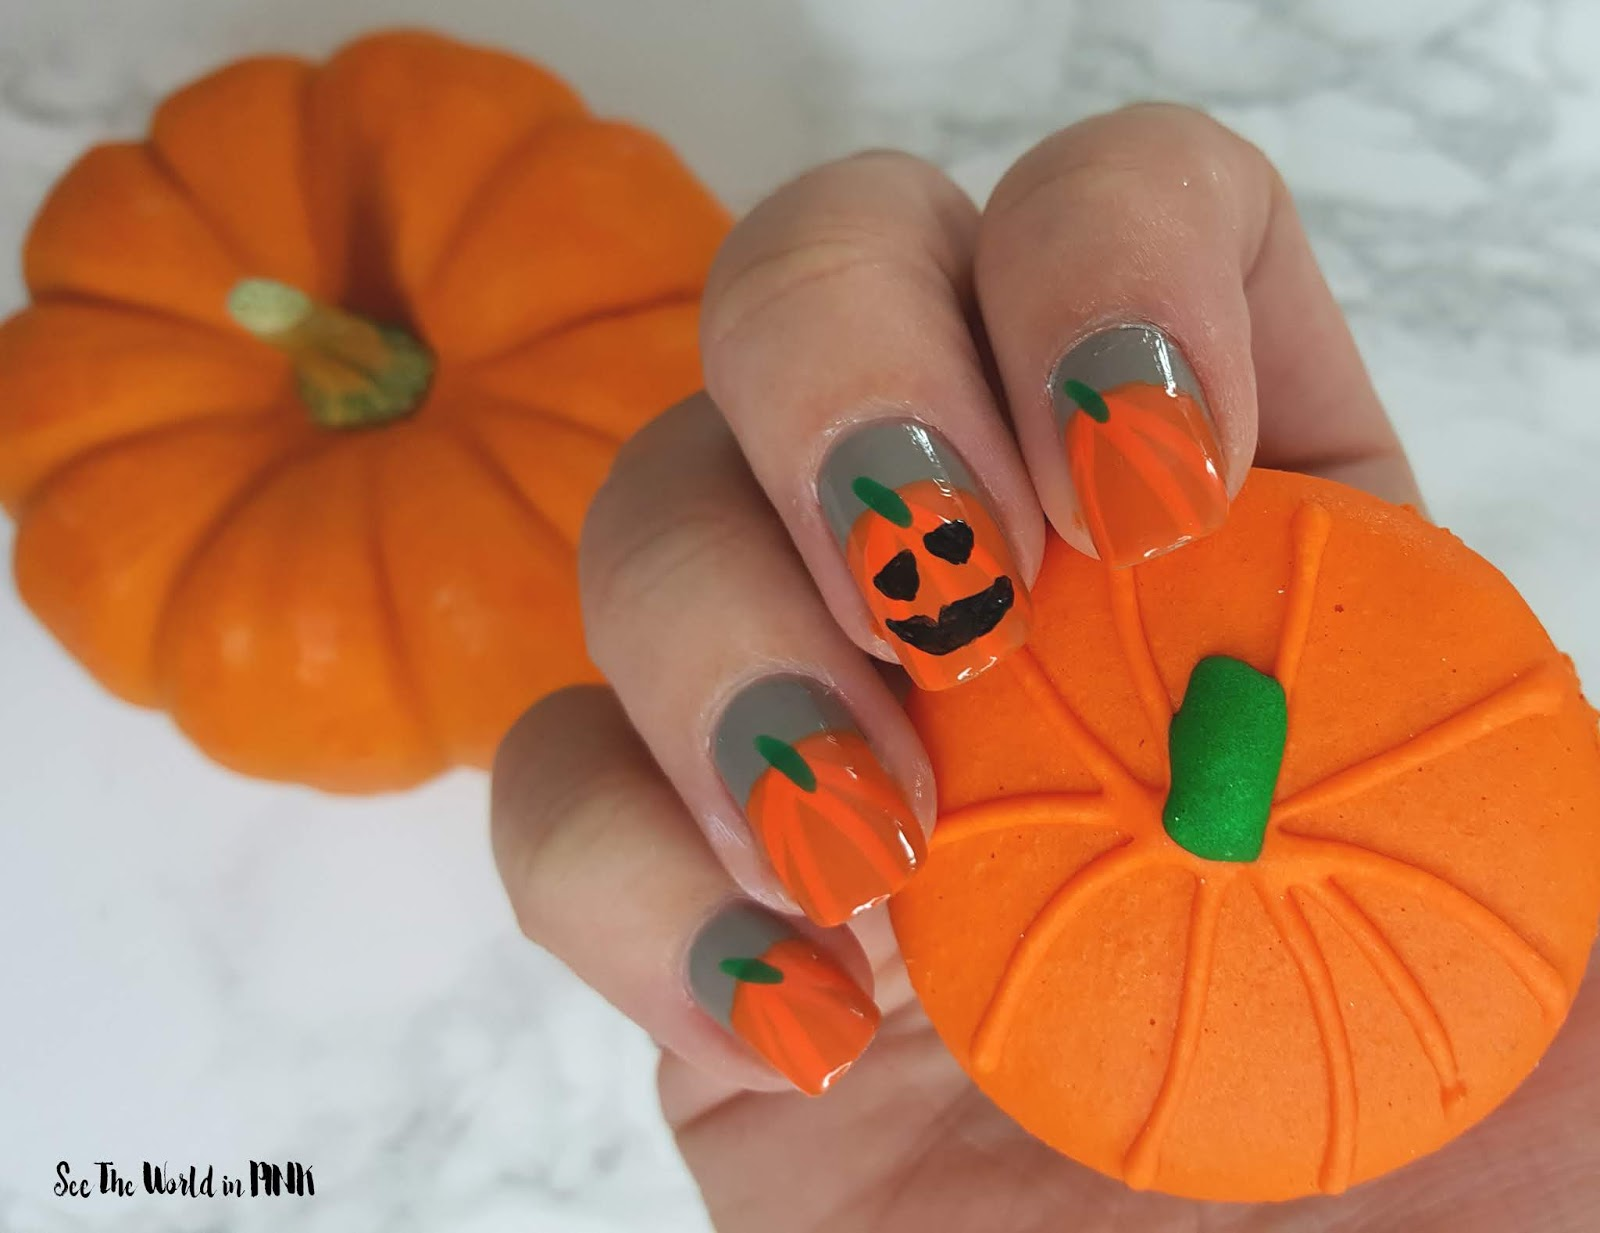 Manicure Monday - Pumpkin and Jack O' Lantern Nail Art